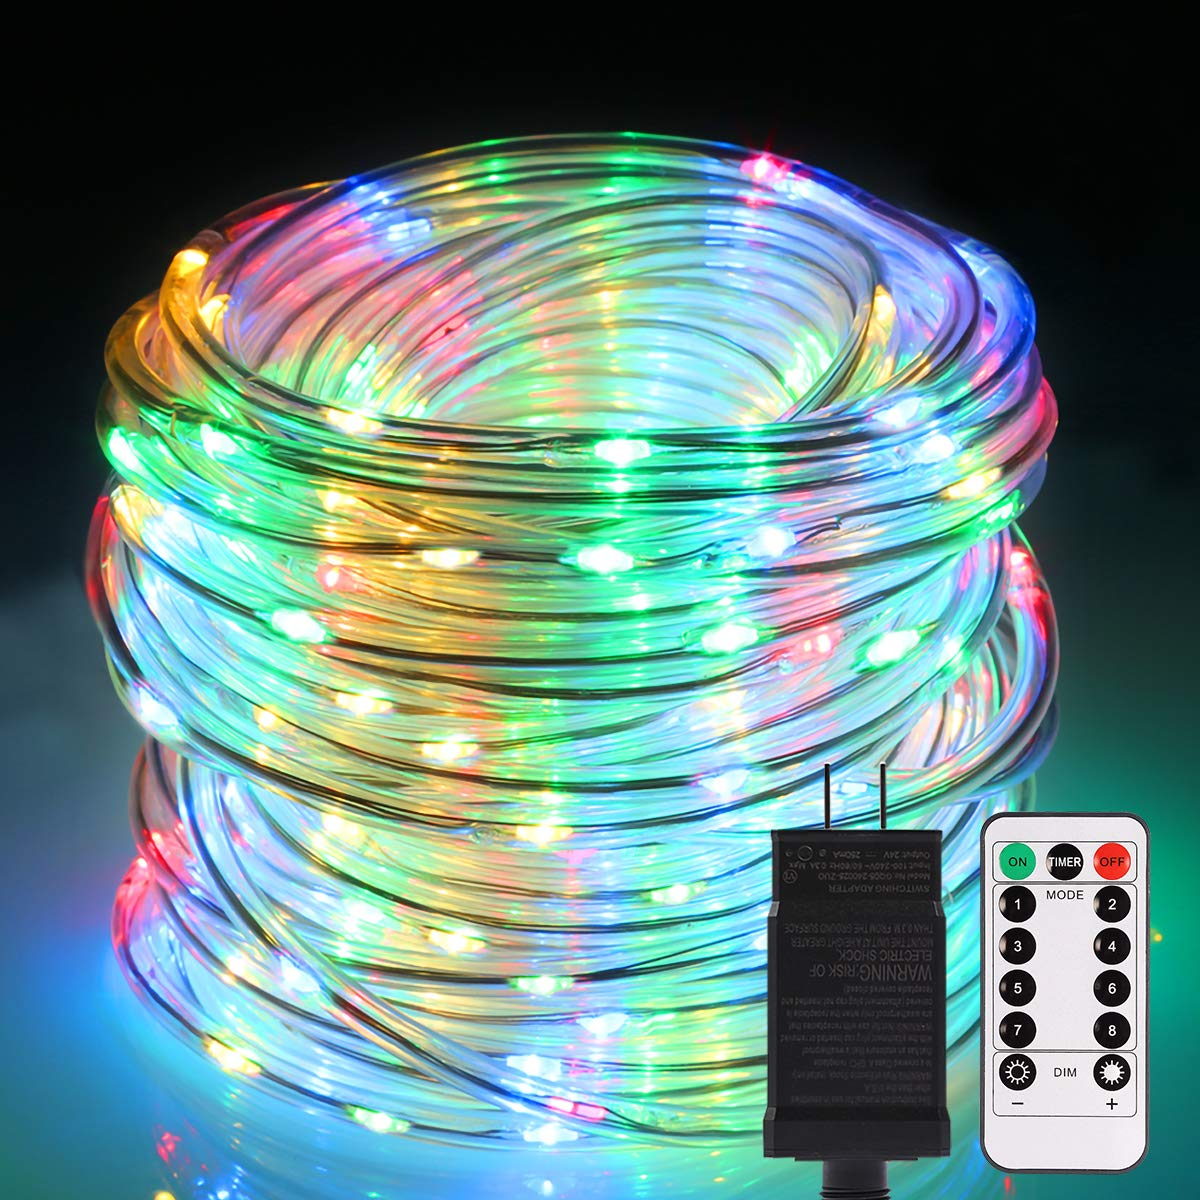 B-right Rope Lights Outdoor, 72ft 336 LED String Lights Plug in 8 Modes Extendable Dimmable Waterproof Rope String Lights for Party Patio Garden Tree Decor, ETL-Listed, Multicolor with Remote Control